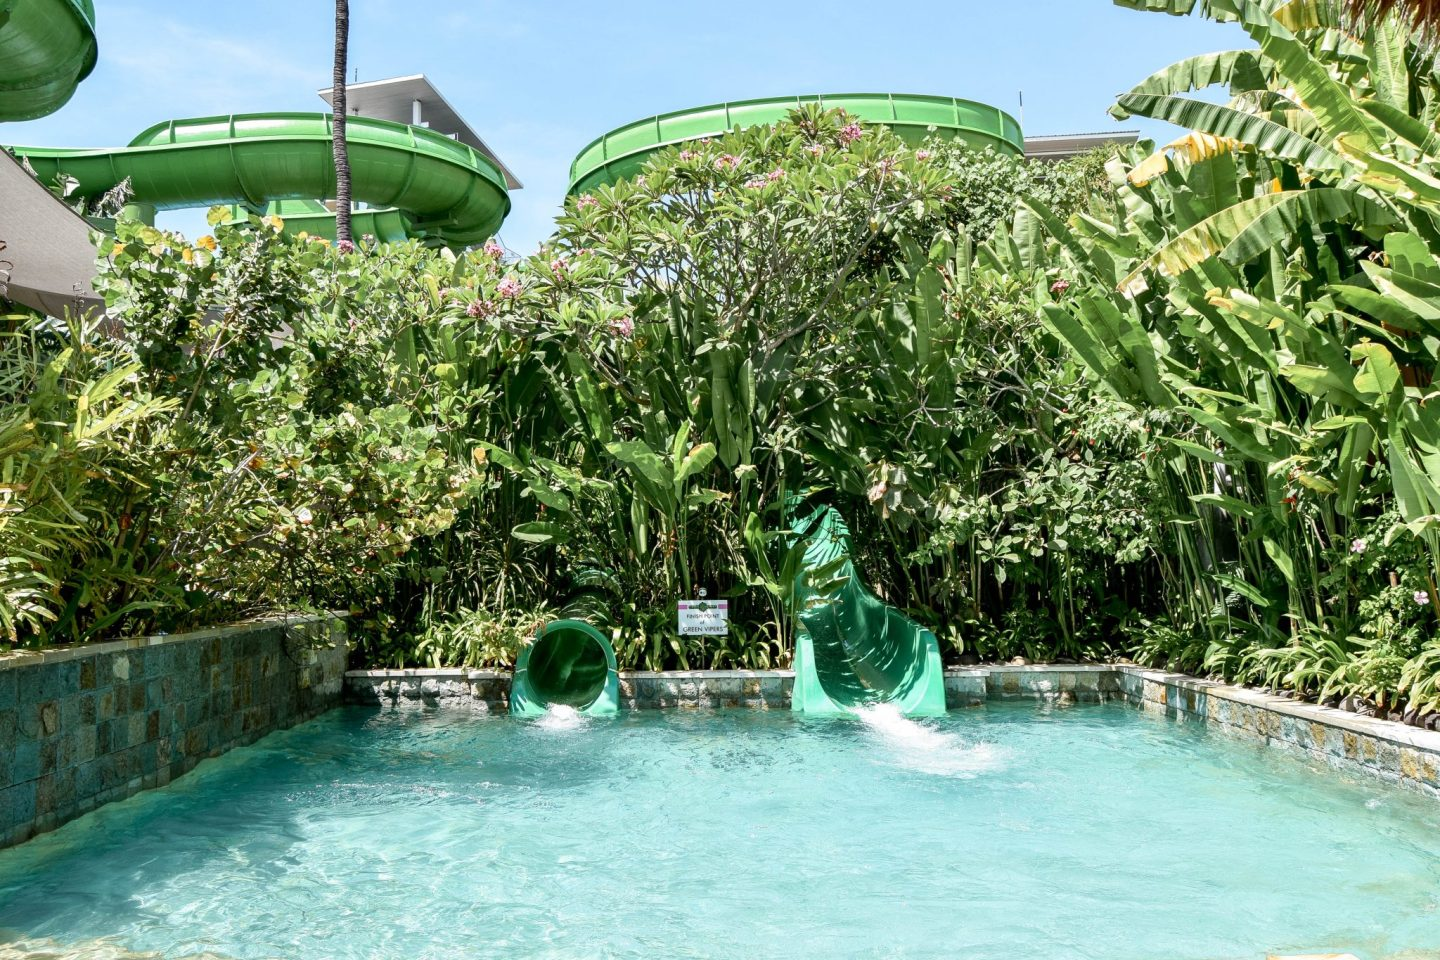 Wanderers & Warriors - Waterbom Bali - The Best Waterpark In Bali - best waterpark in asia - Waterbom Bali rides